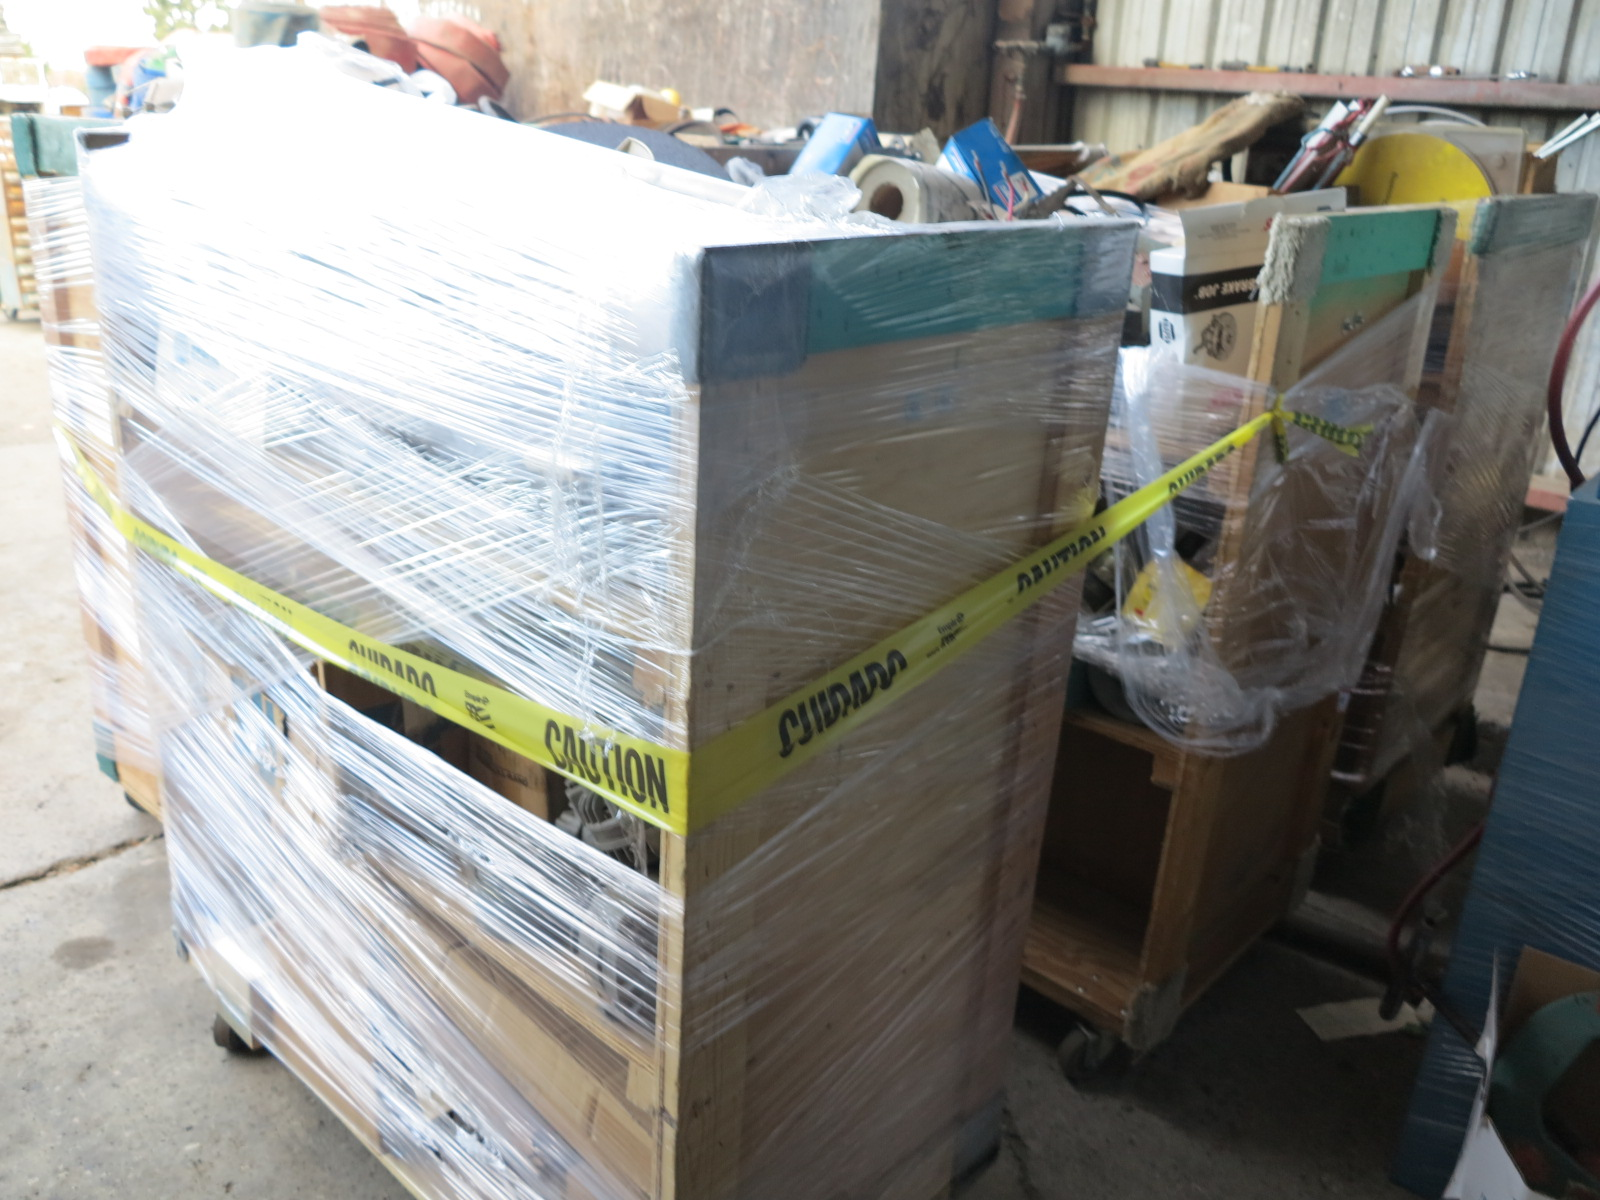 LOT - (6) CARTS TO CONTAIN: JACKHAMMER BITS, AUTOMOTIVE AND RELATED ITEMS - Image 5 of 5